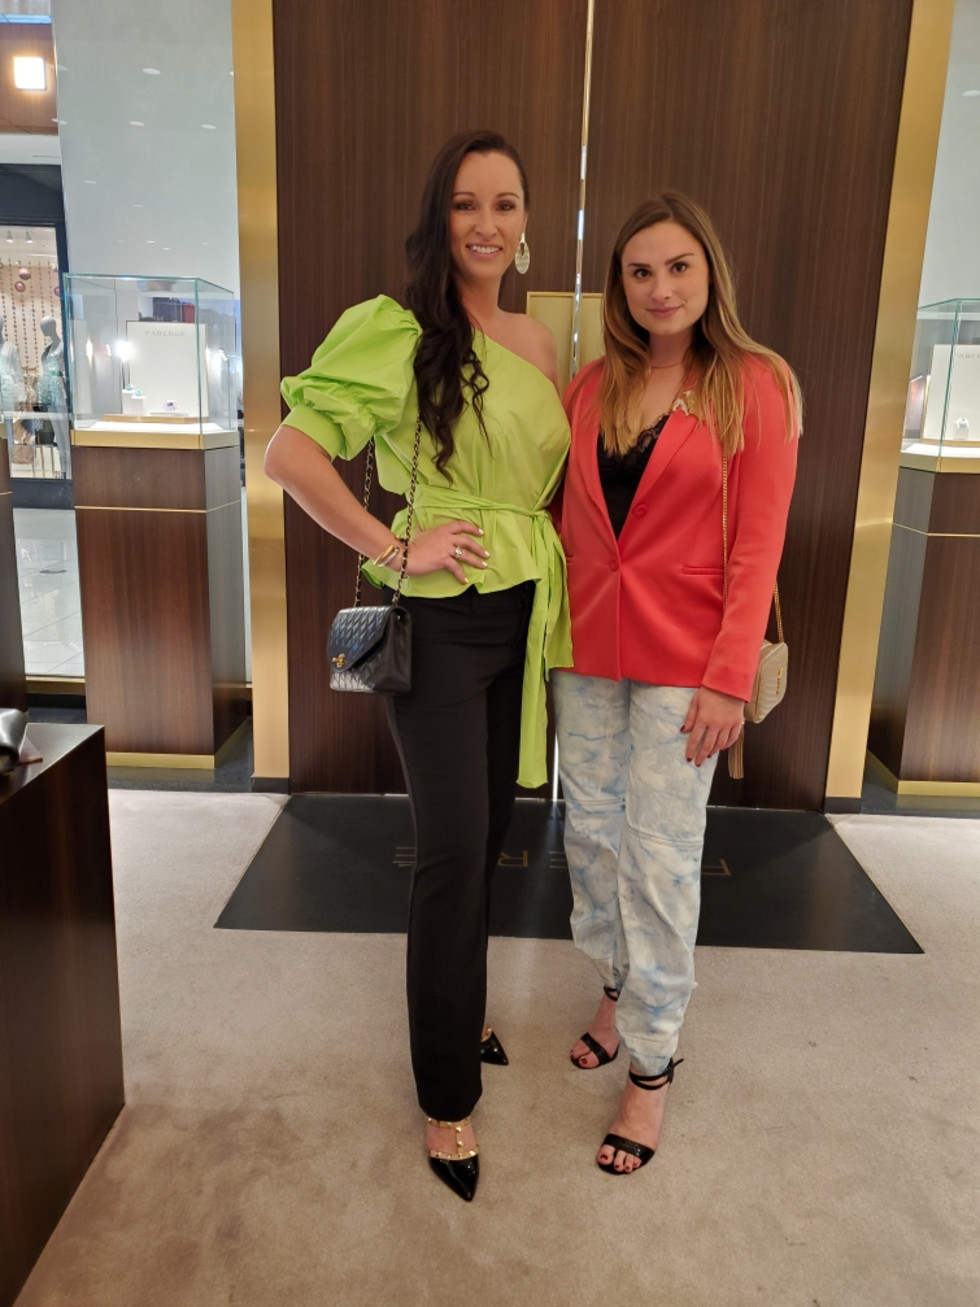 LCA Houston Faberge Diwali 2020 Samantha Holsomback and Natallie Galerne